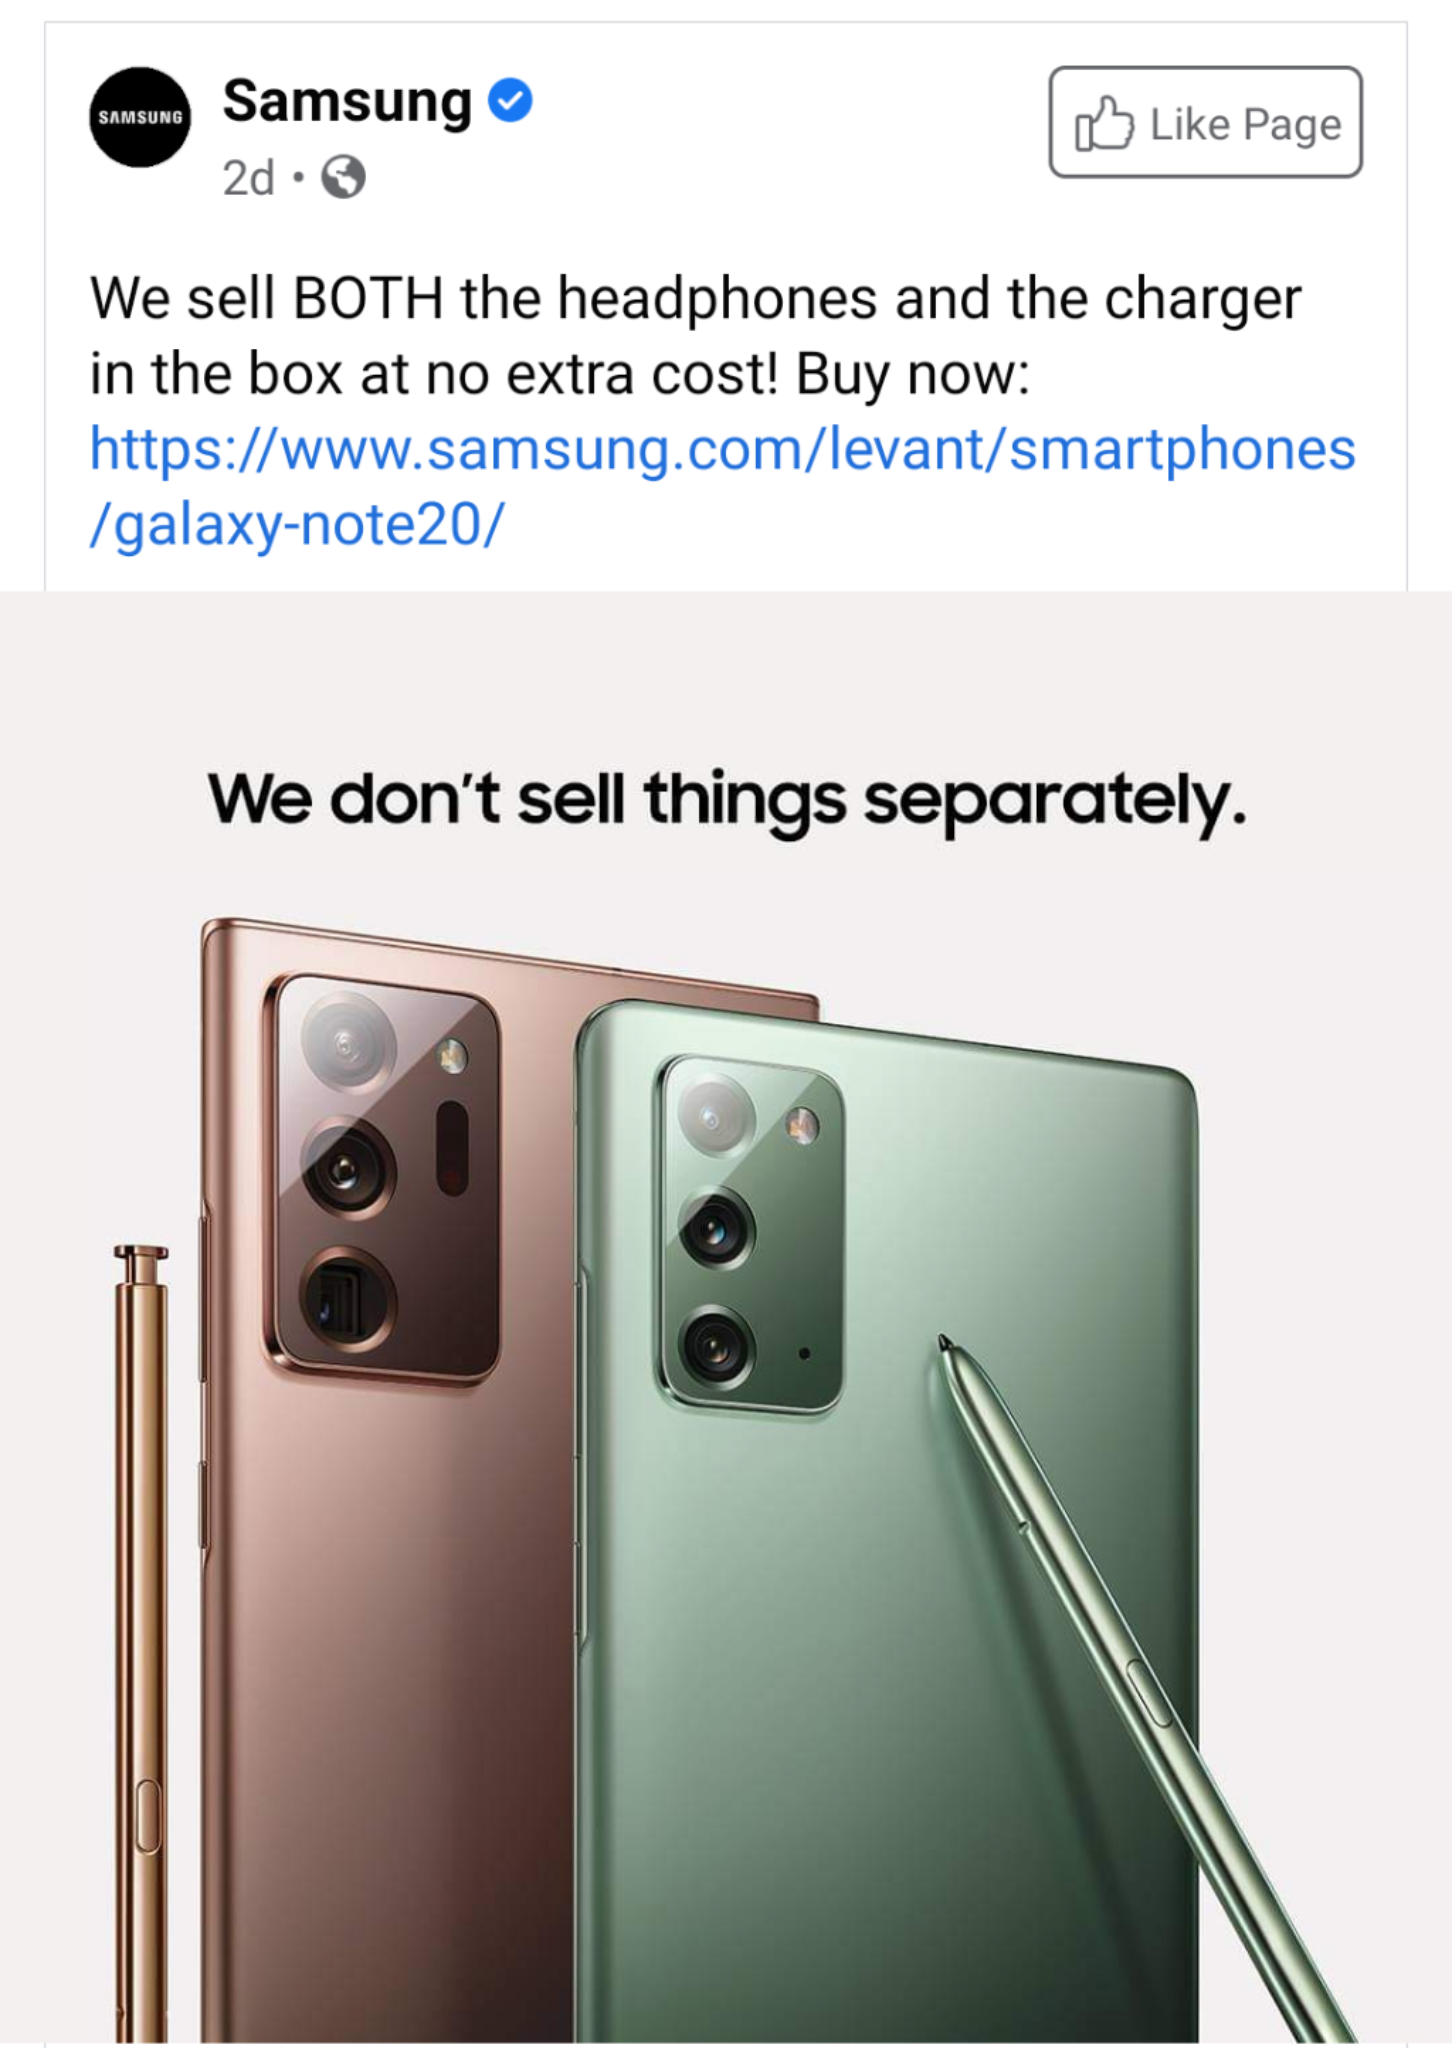 Samsung back at it again. They got no chills